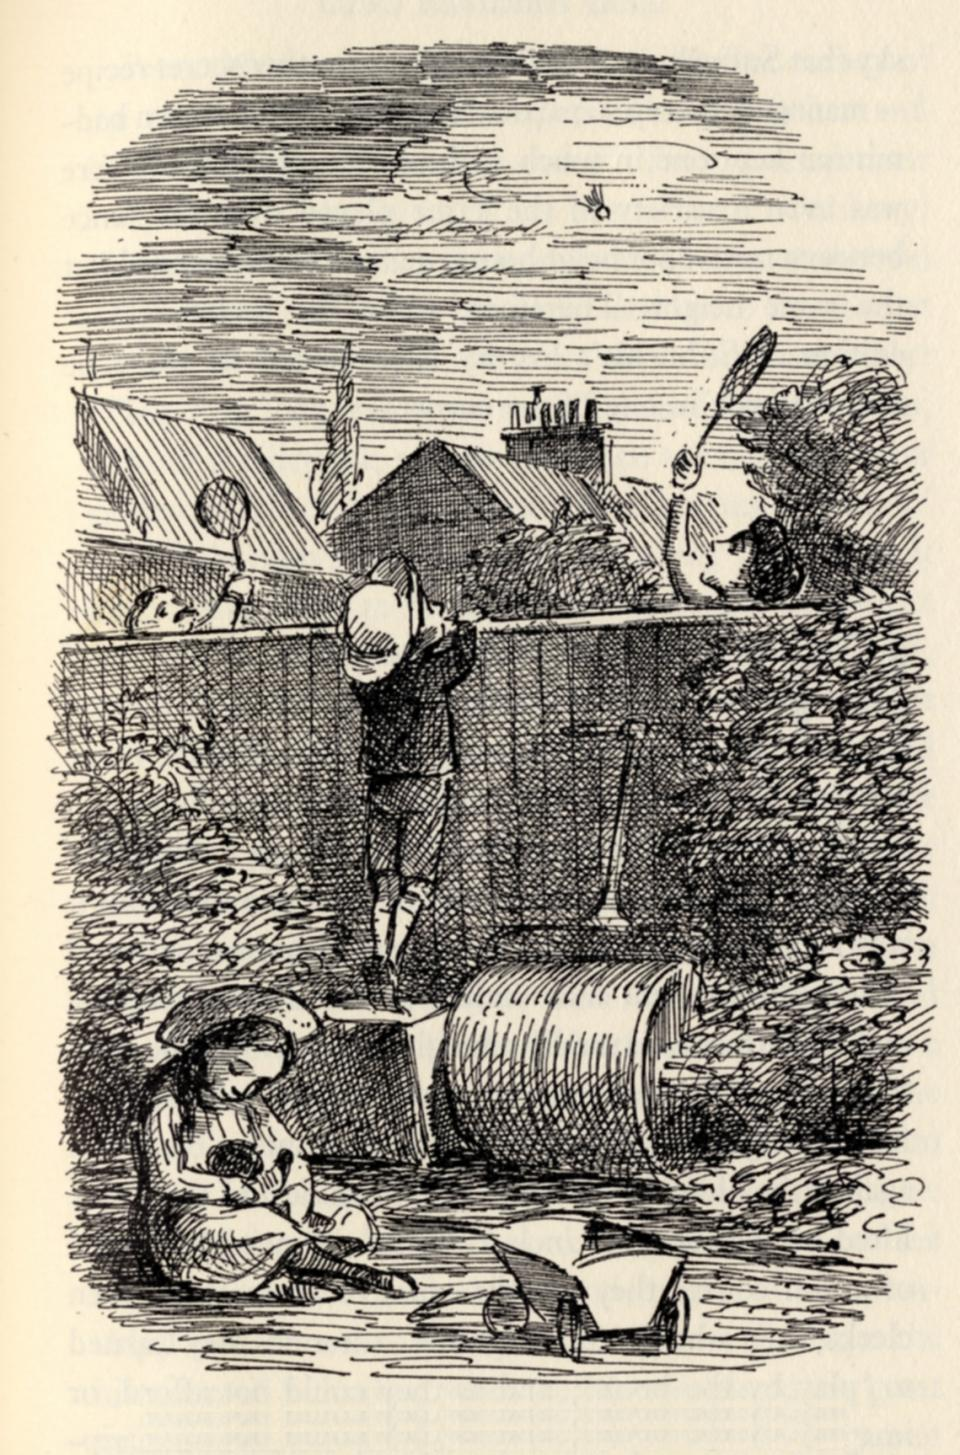 Badminton was the game of suburbia's great days: Illustration by Edward Ardizzone